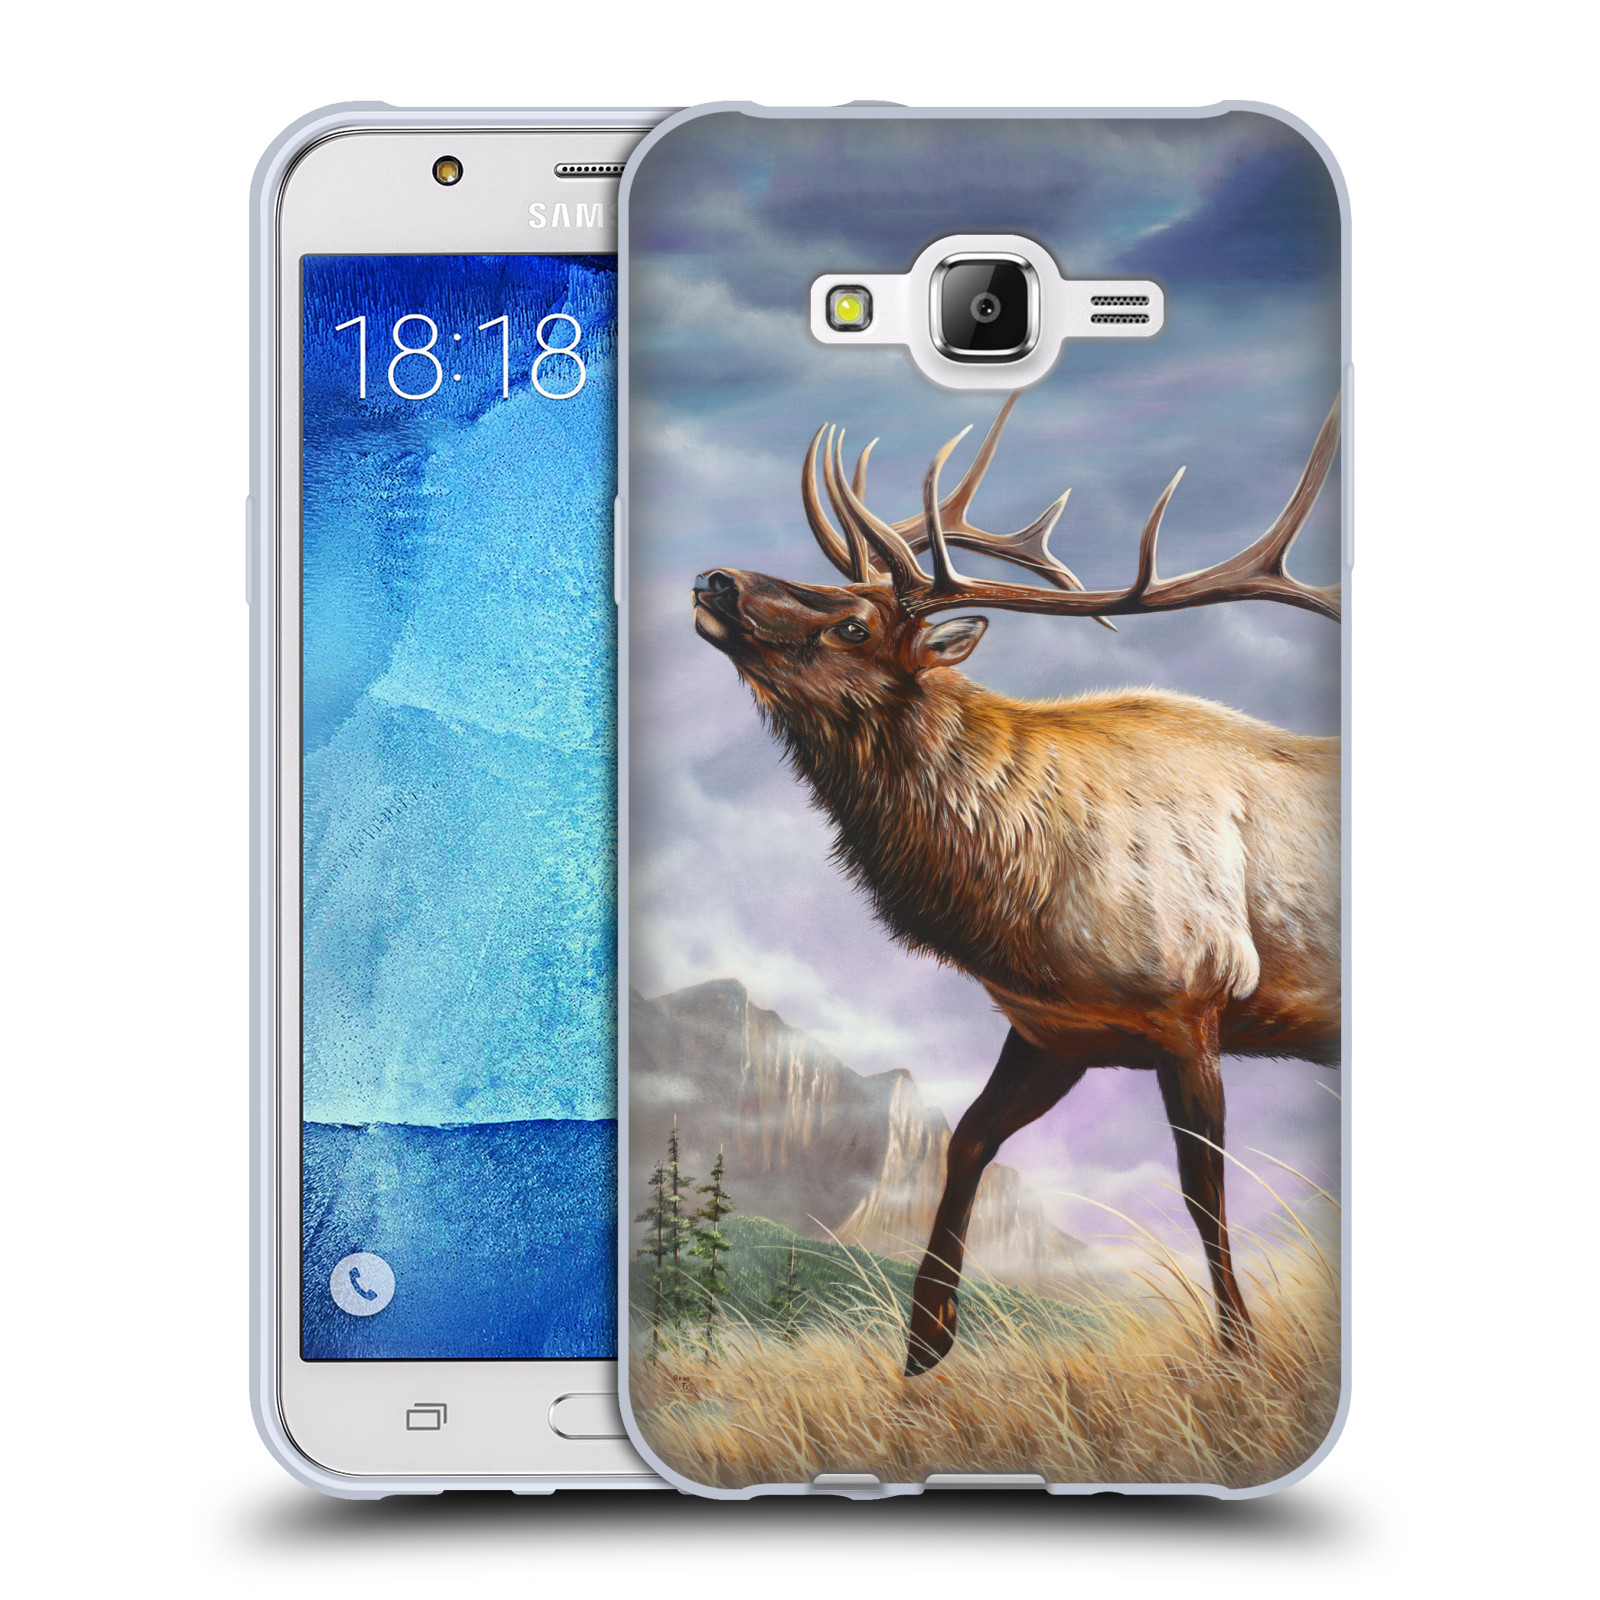 UFFICIALE-GENO-PEOPLES-ART-VITA-COVER-MORBIDA-IN-GEL-PER-SAMSUNG-TELEFONI-3